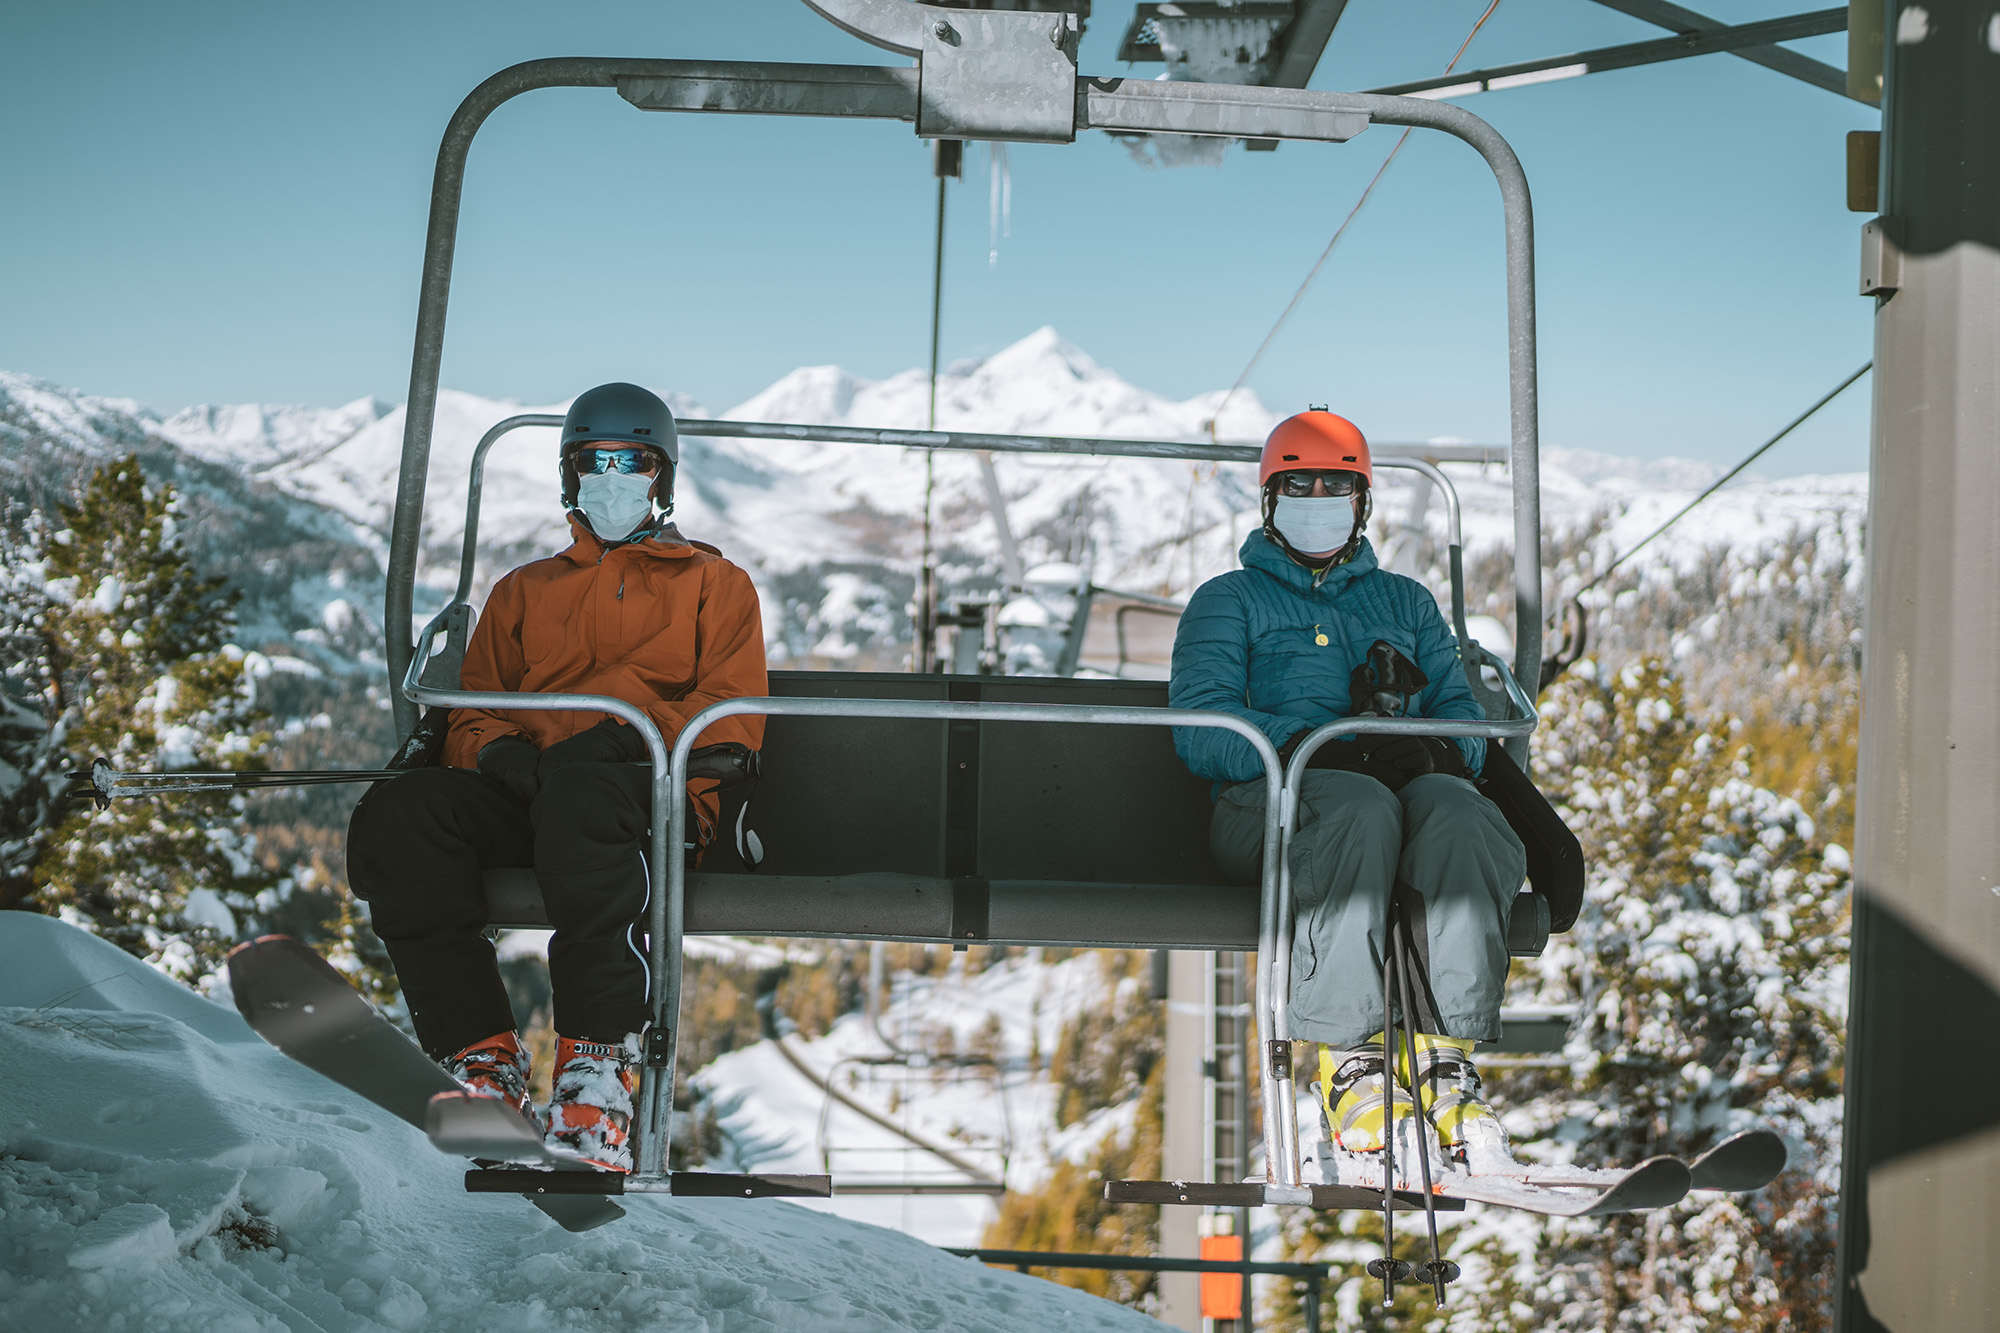 Two skiers ride a chairlift while wearing snow gear and masks